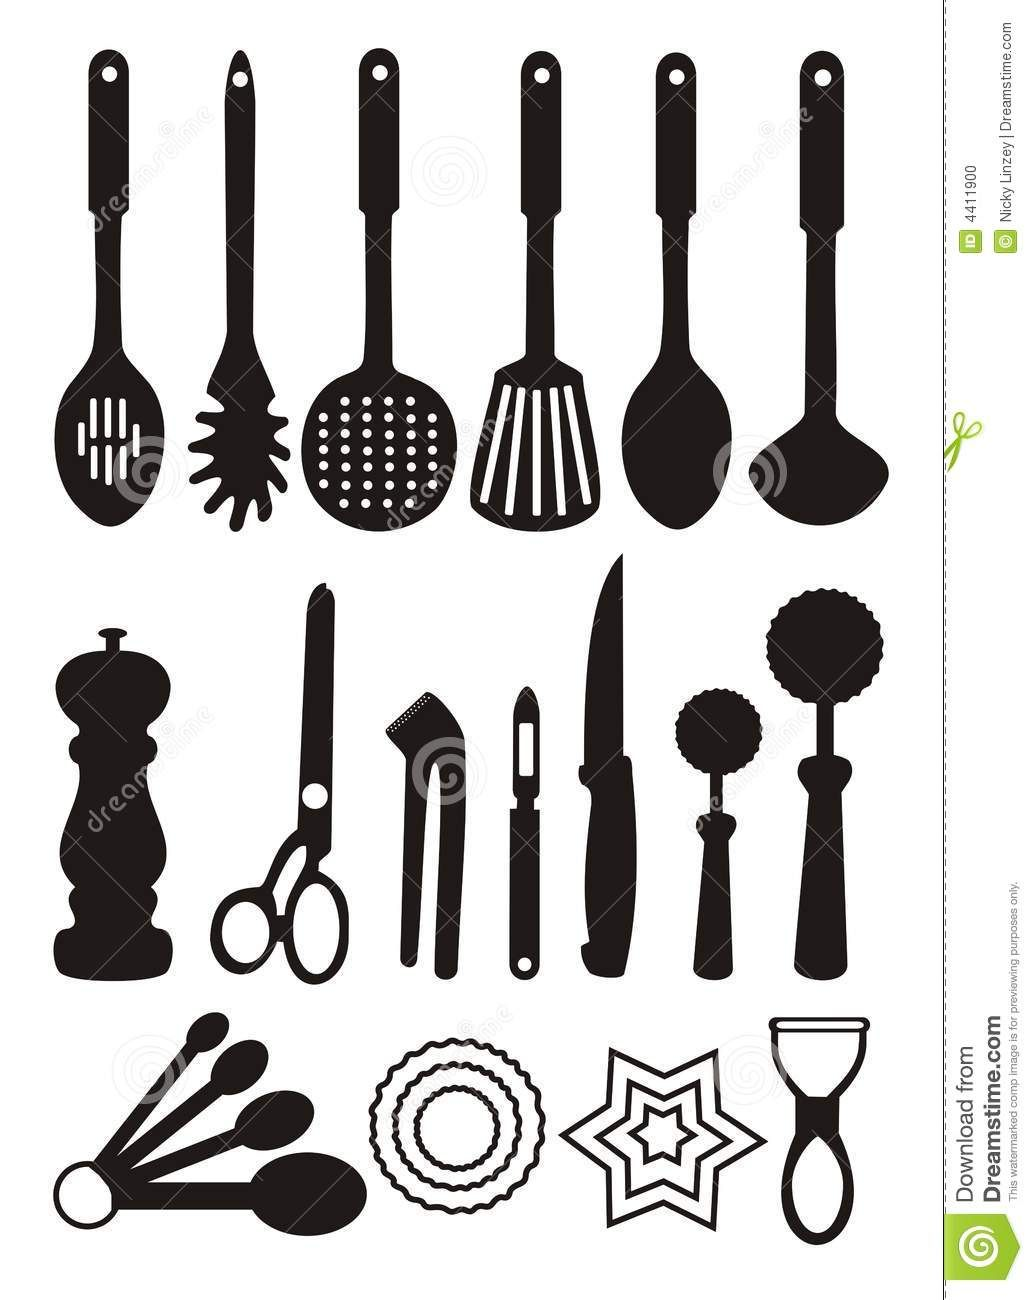 kitchen tools clip art - Free Large Images | baby | Pinterest | Clip ...